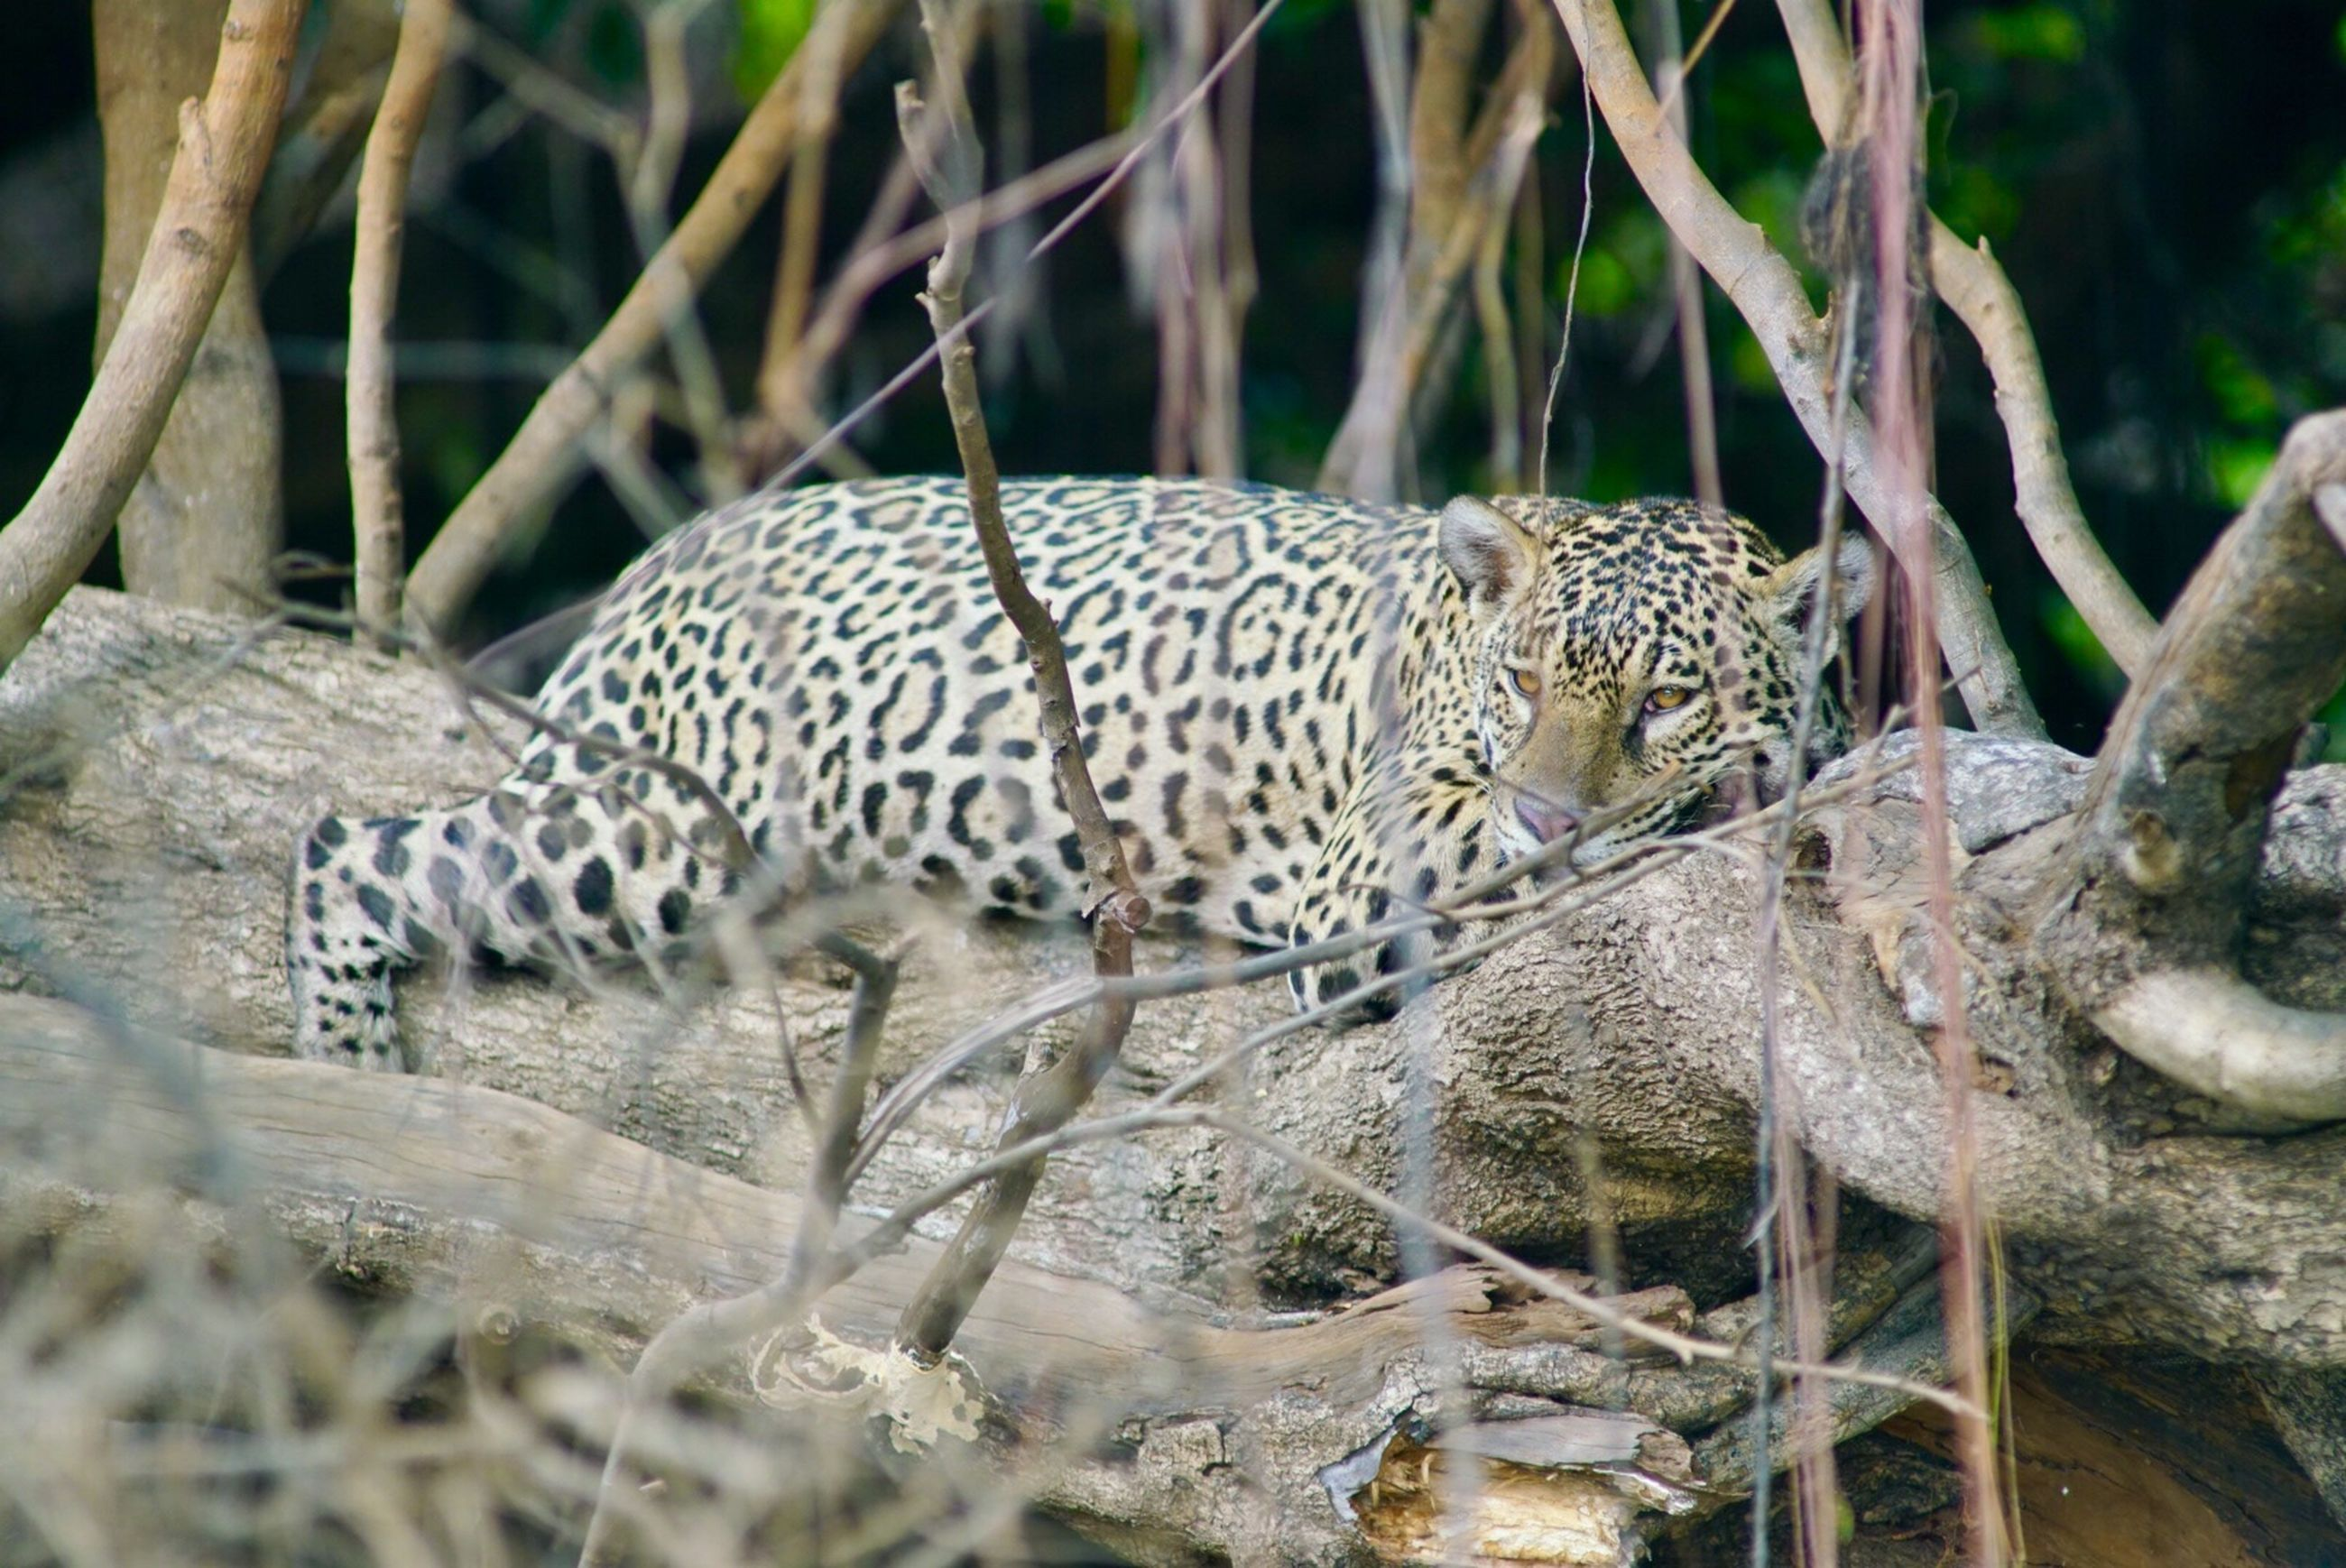 animals in the wild, animal themes, spotted, leopard, one animal, animal wildlife, mammal, day, nature, no people, outdoors, safari animals, cheetah